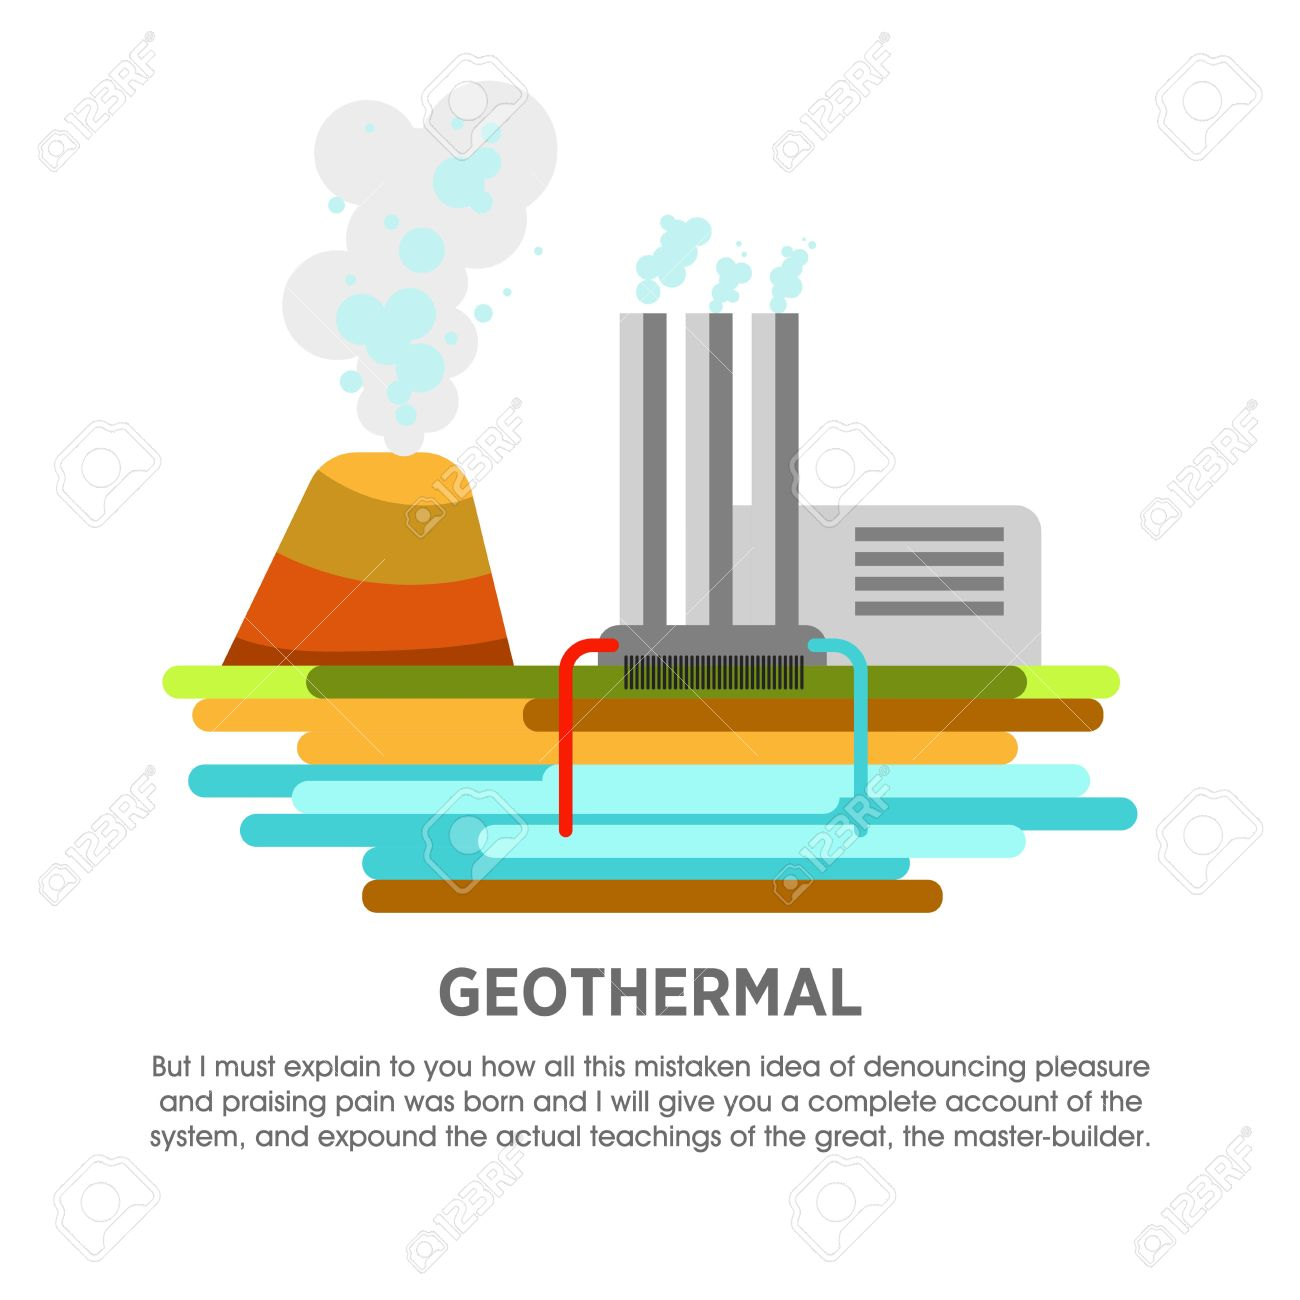 Thermal Energy Clip Geothermal Power Plant Diagram Station Earth Heat Vector Flat Illustration Stockfoto 1300x1300